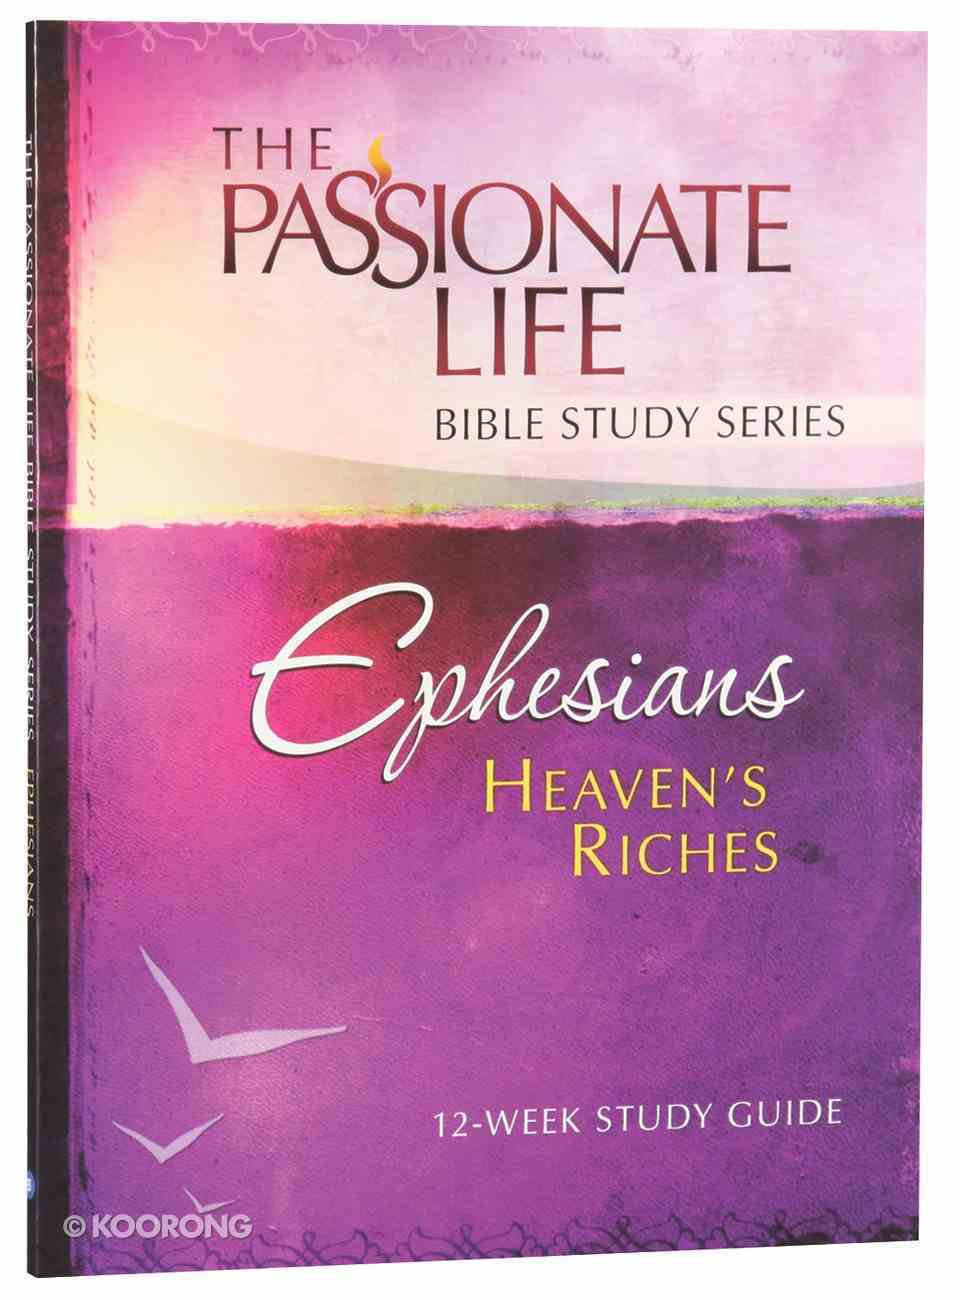 Ephesians - Heavens Riches (The Passionate Life Bible Study Series) Paperback